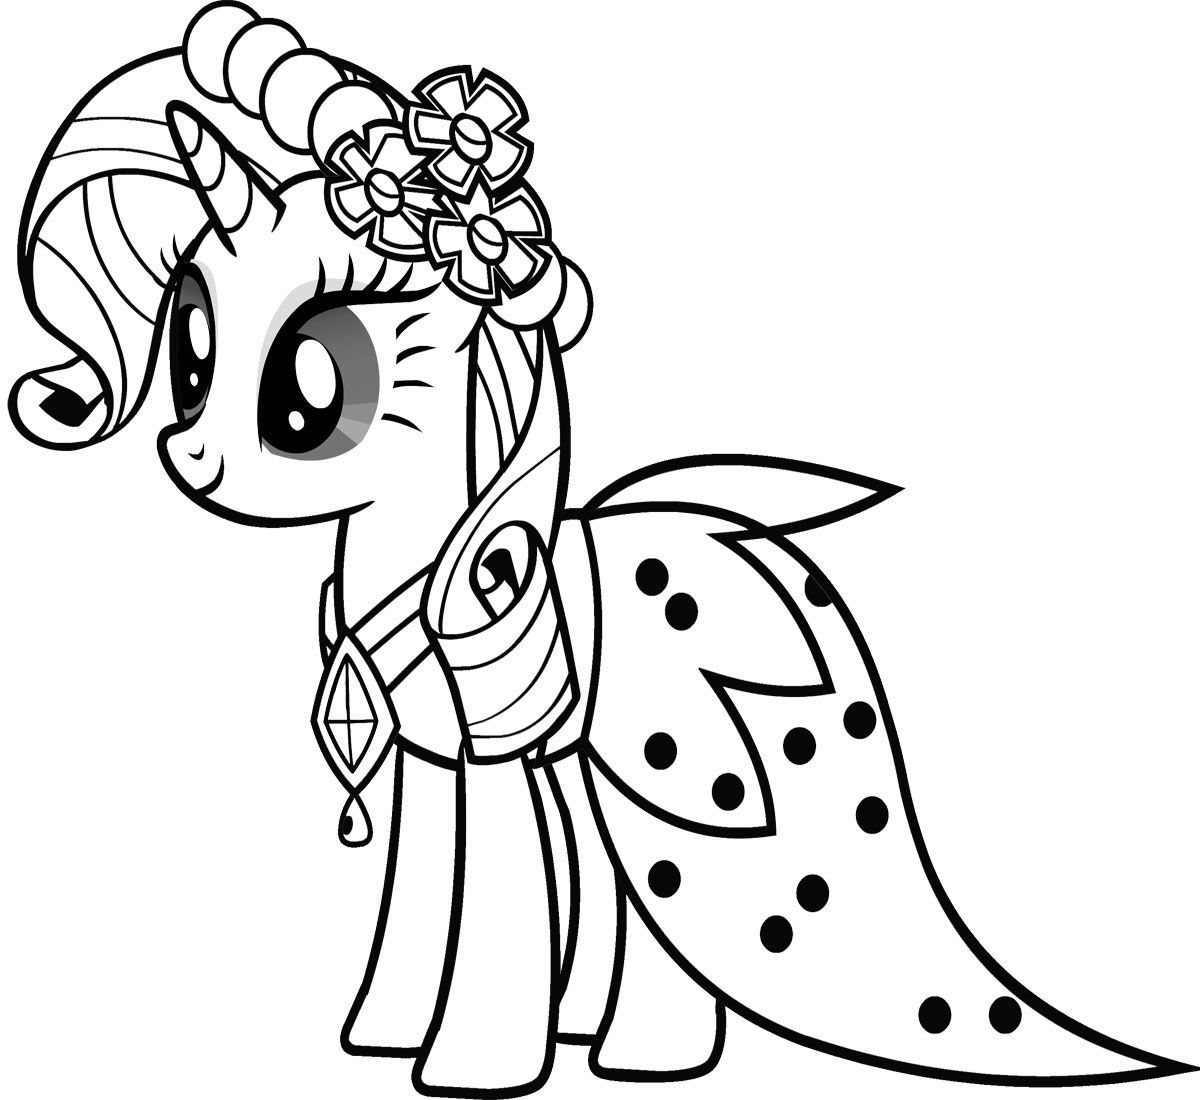 kids under 7 my little pony coloring pages ideas for my little